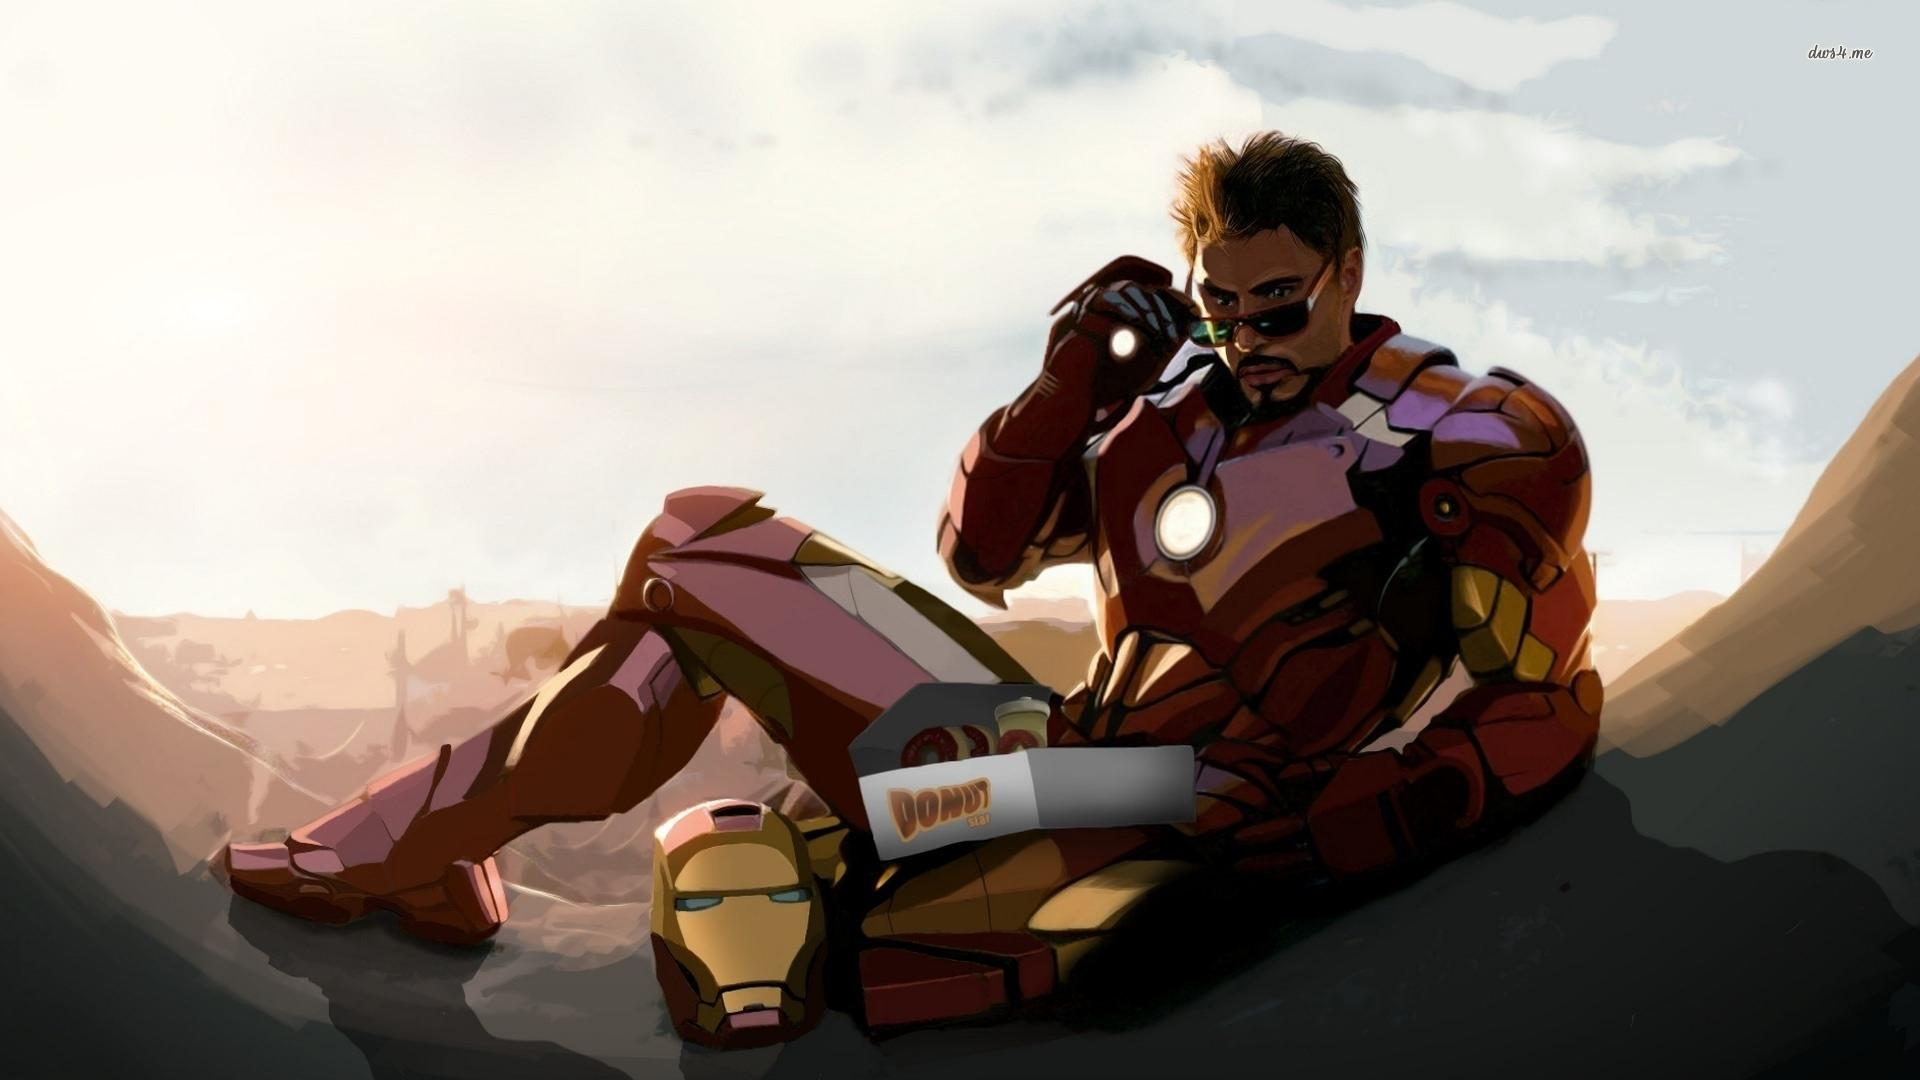 I Am Iron Man Wallpapers - Wallpaper Cave